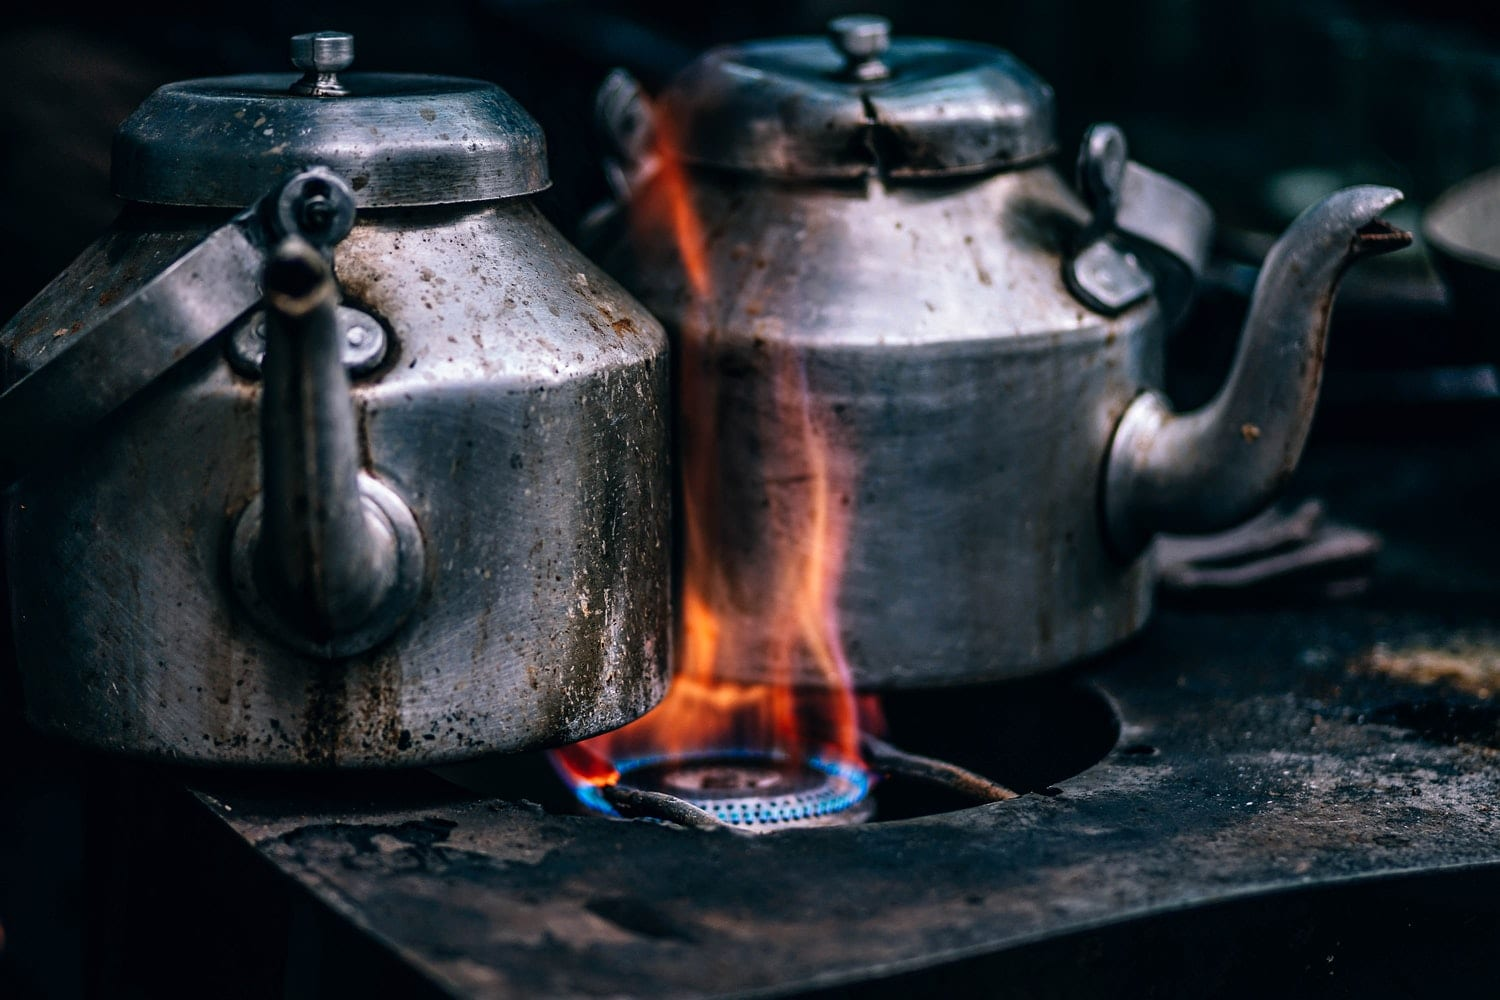 2 kettles on stove